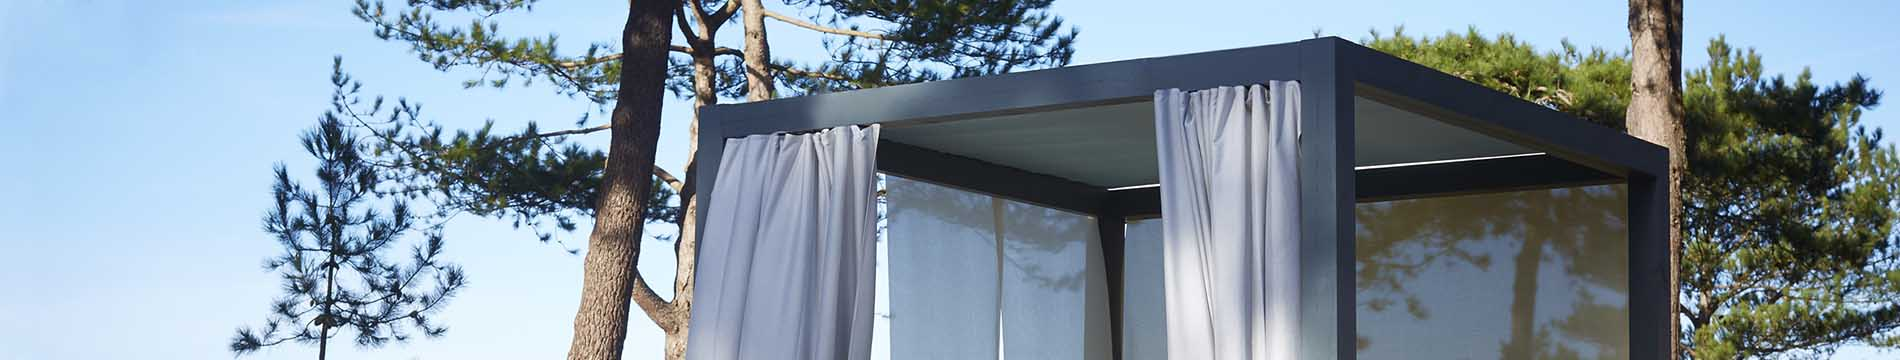 How to clean your pergola fabrics